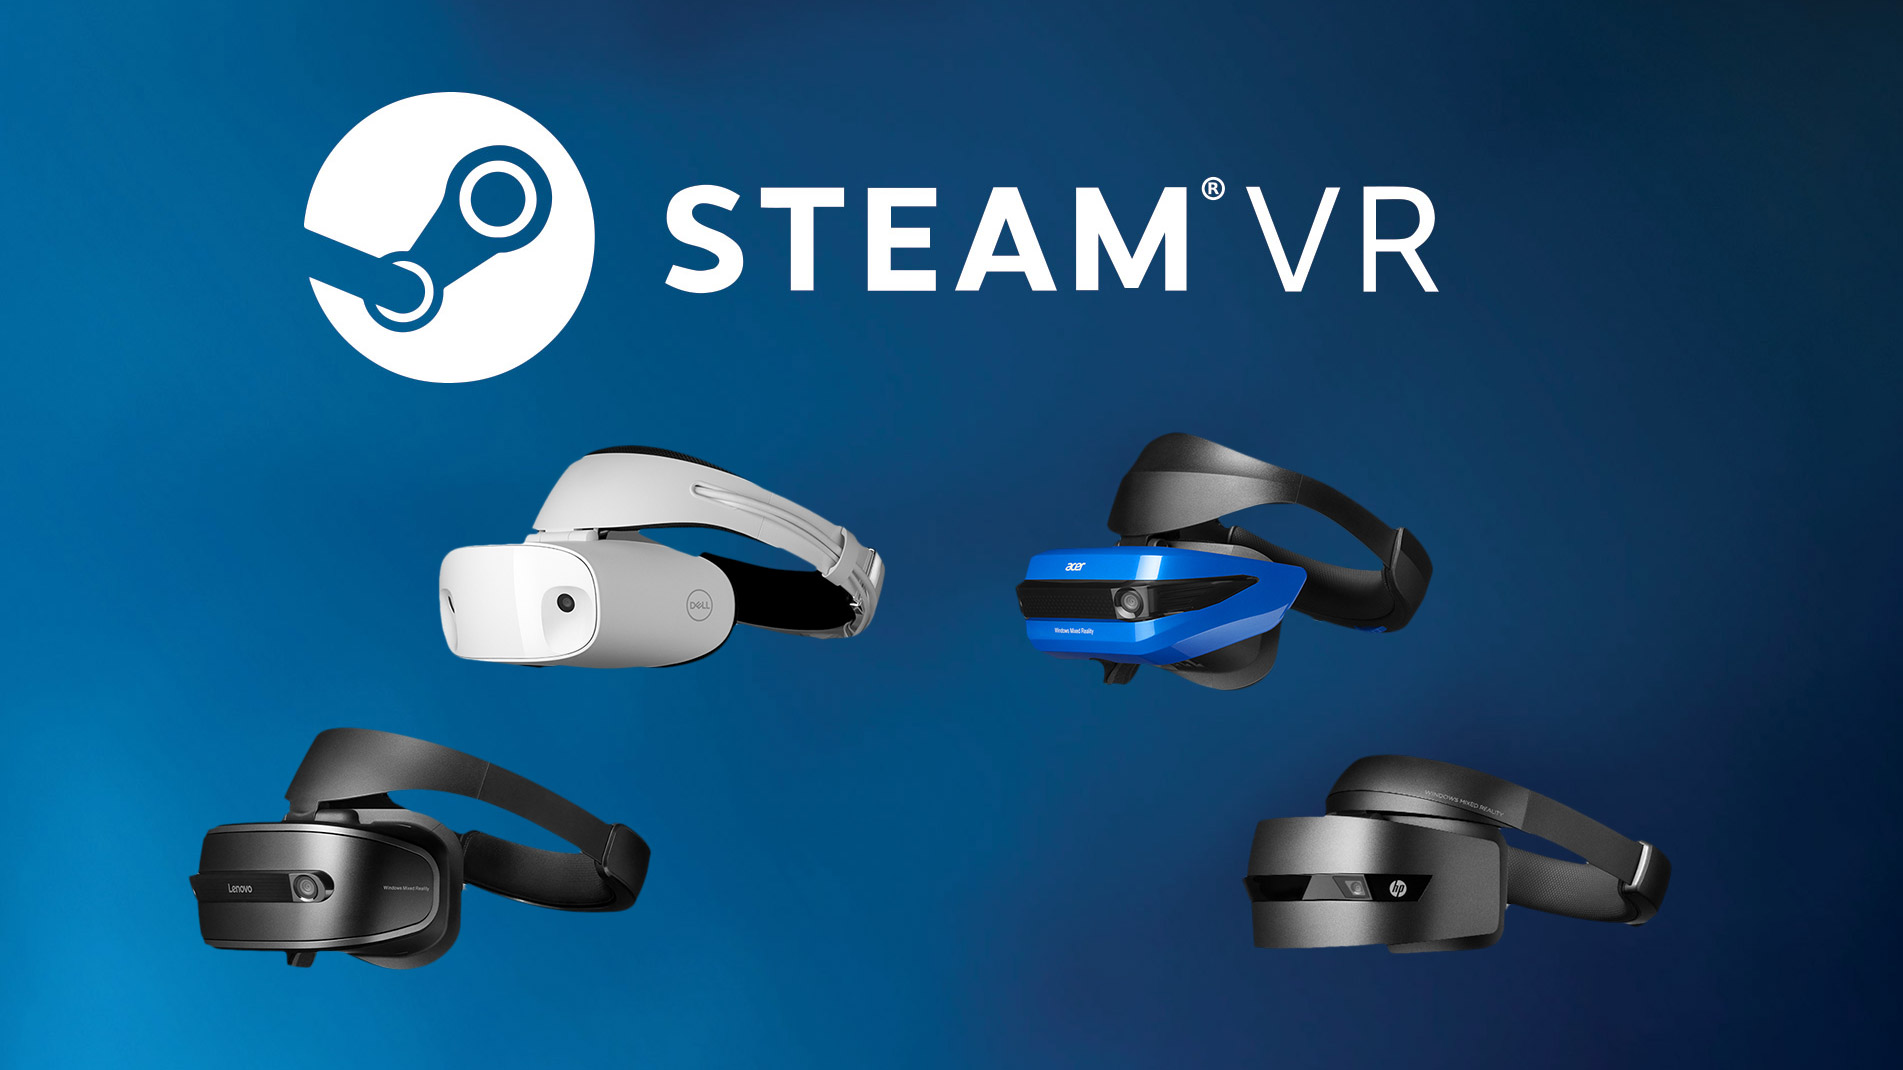 Steamvr Will Support Windows Vr Headsets Road To Vr